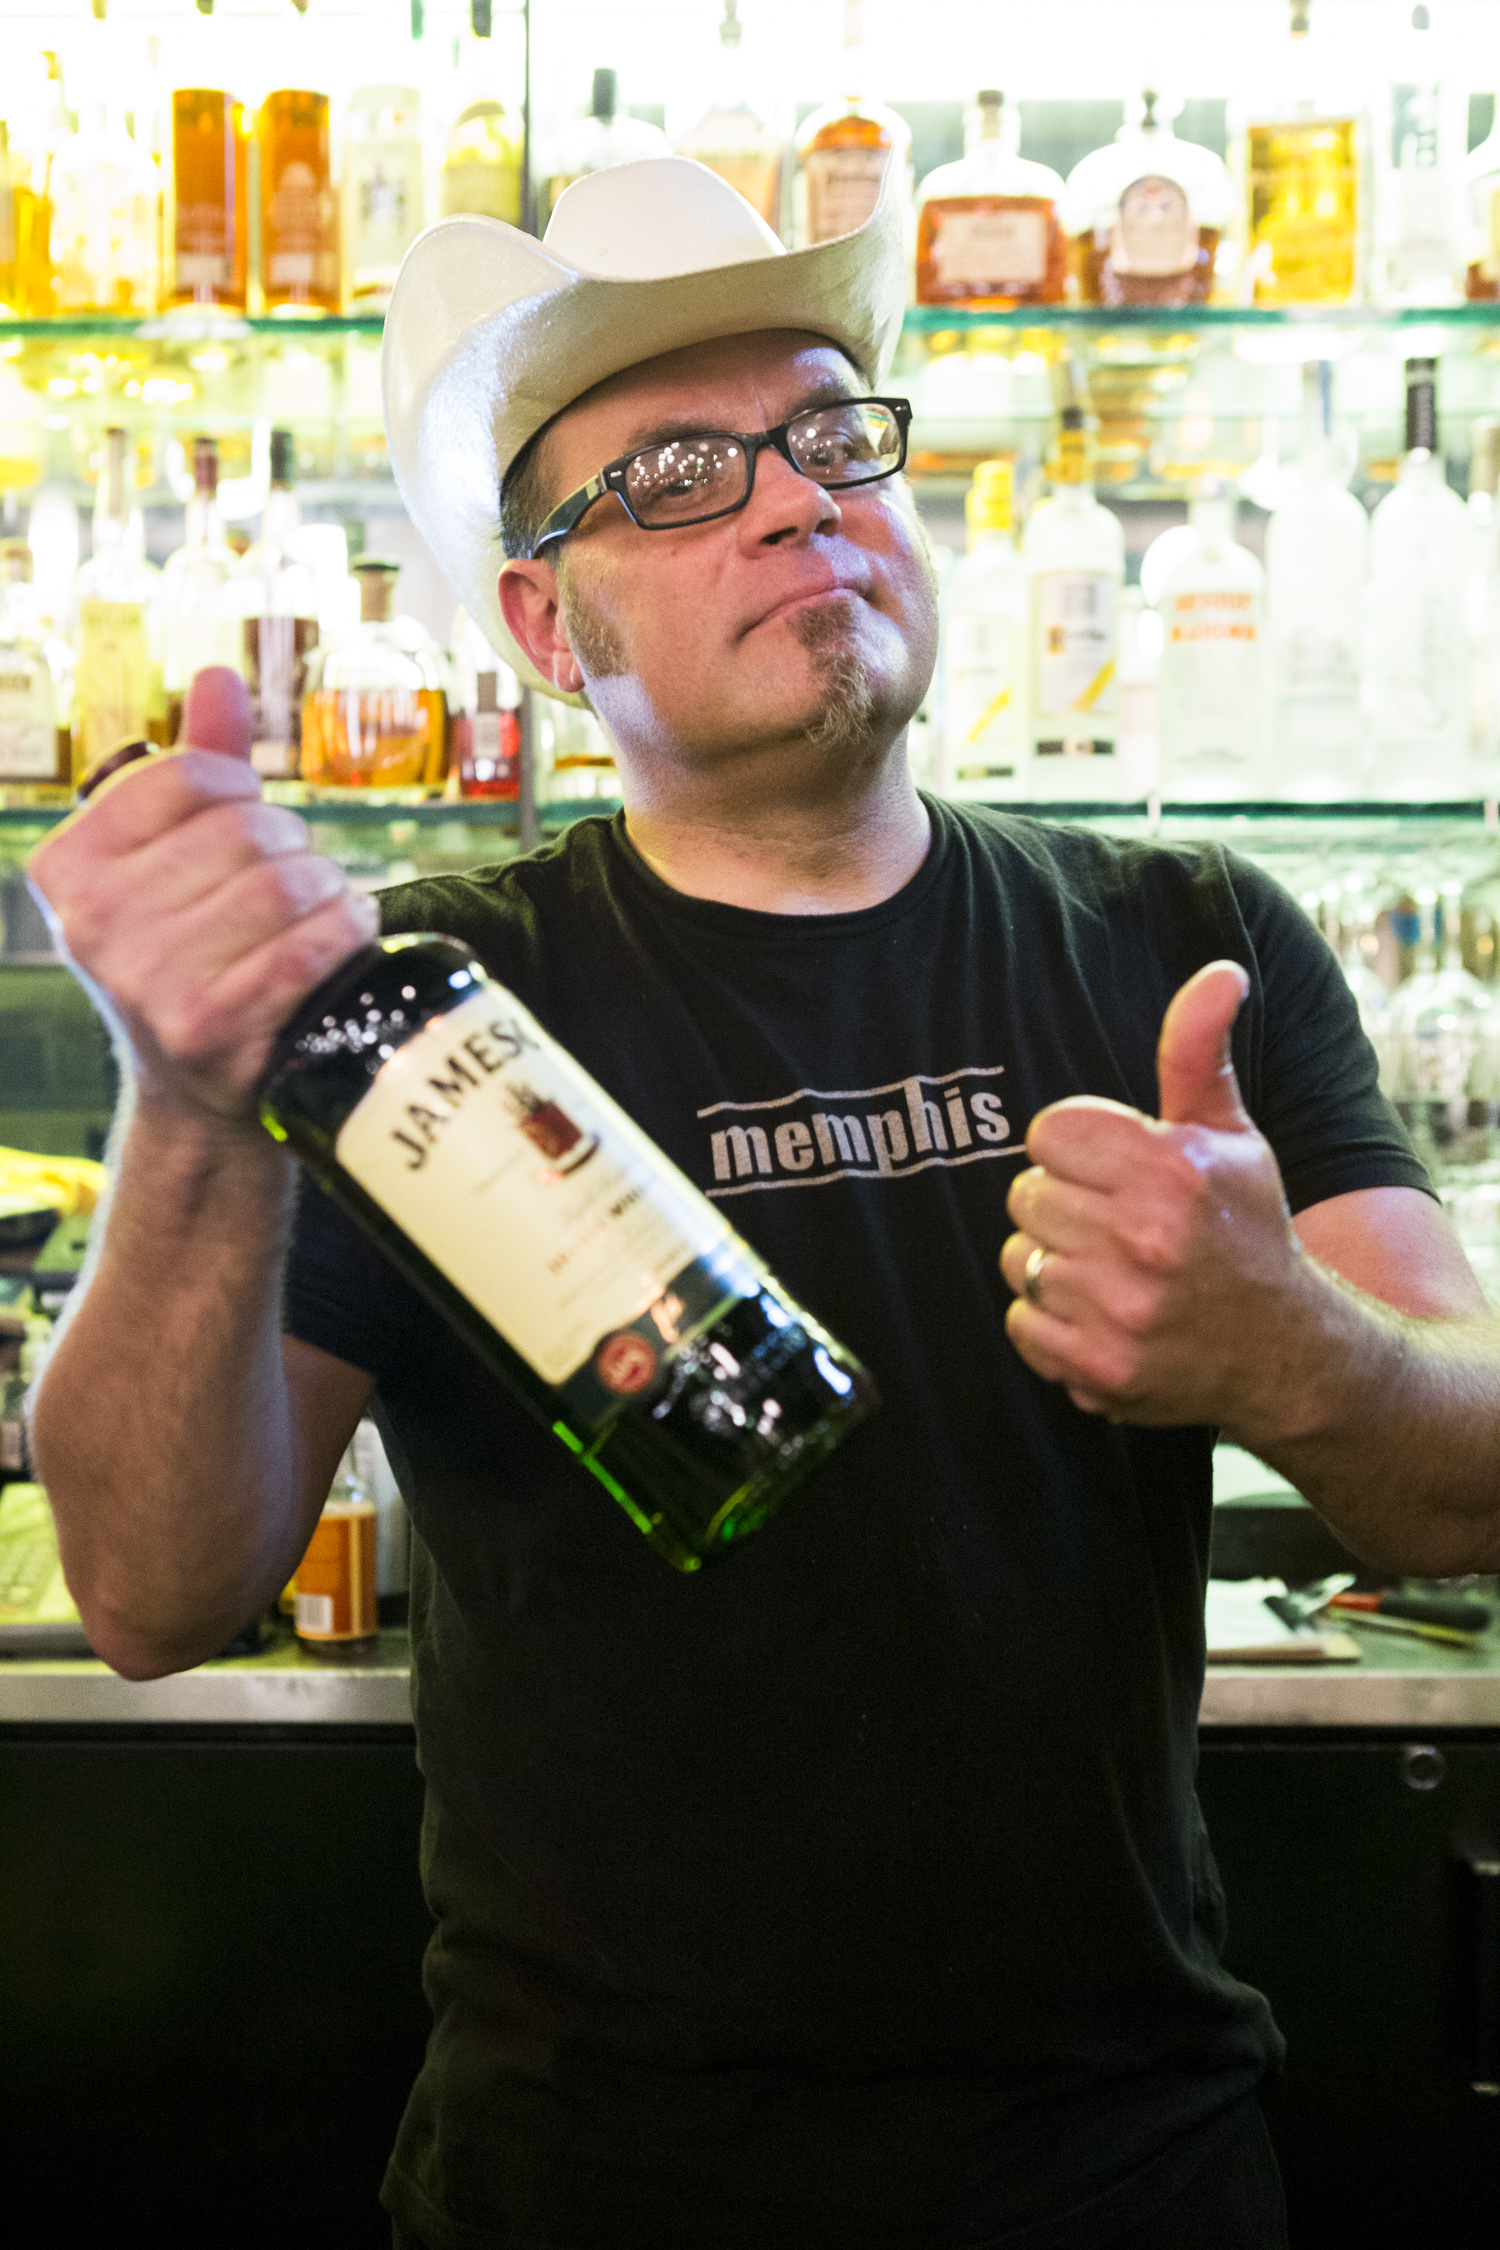 Dave Mau shows off his Whiskey bottle pose